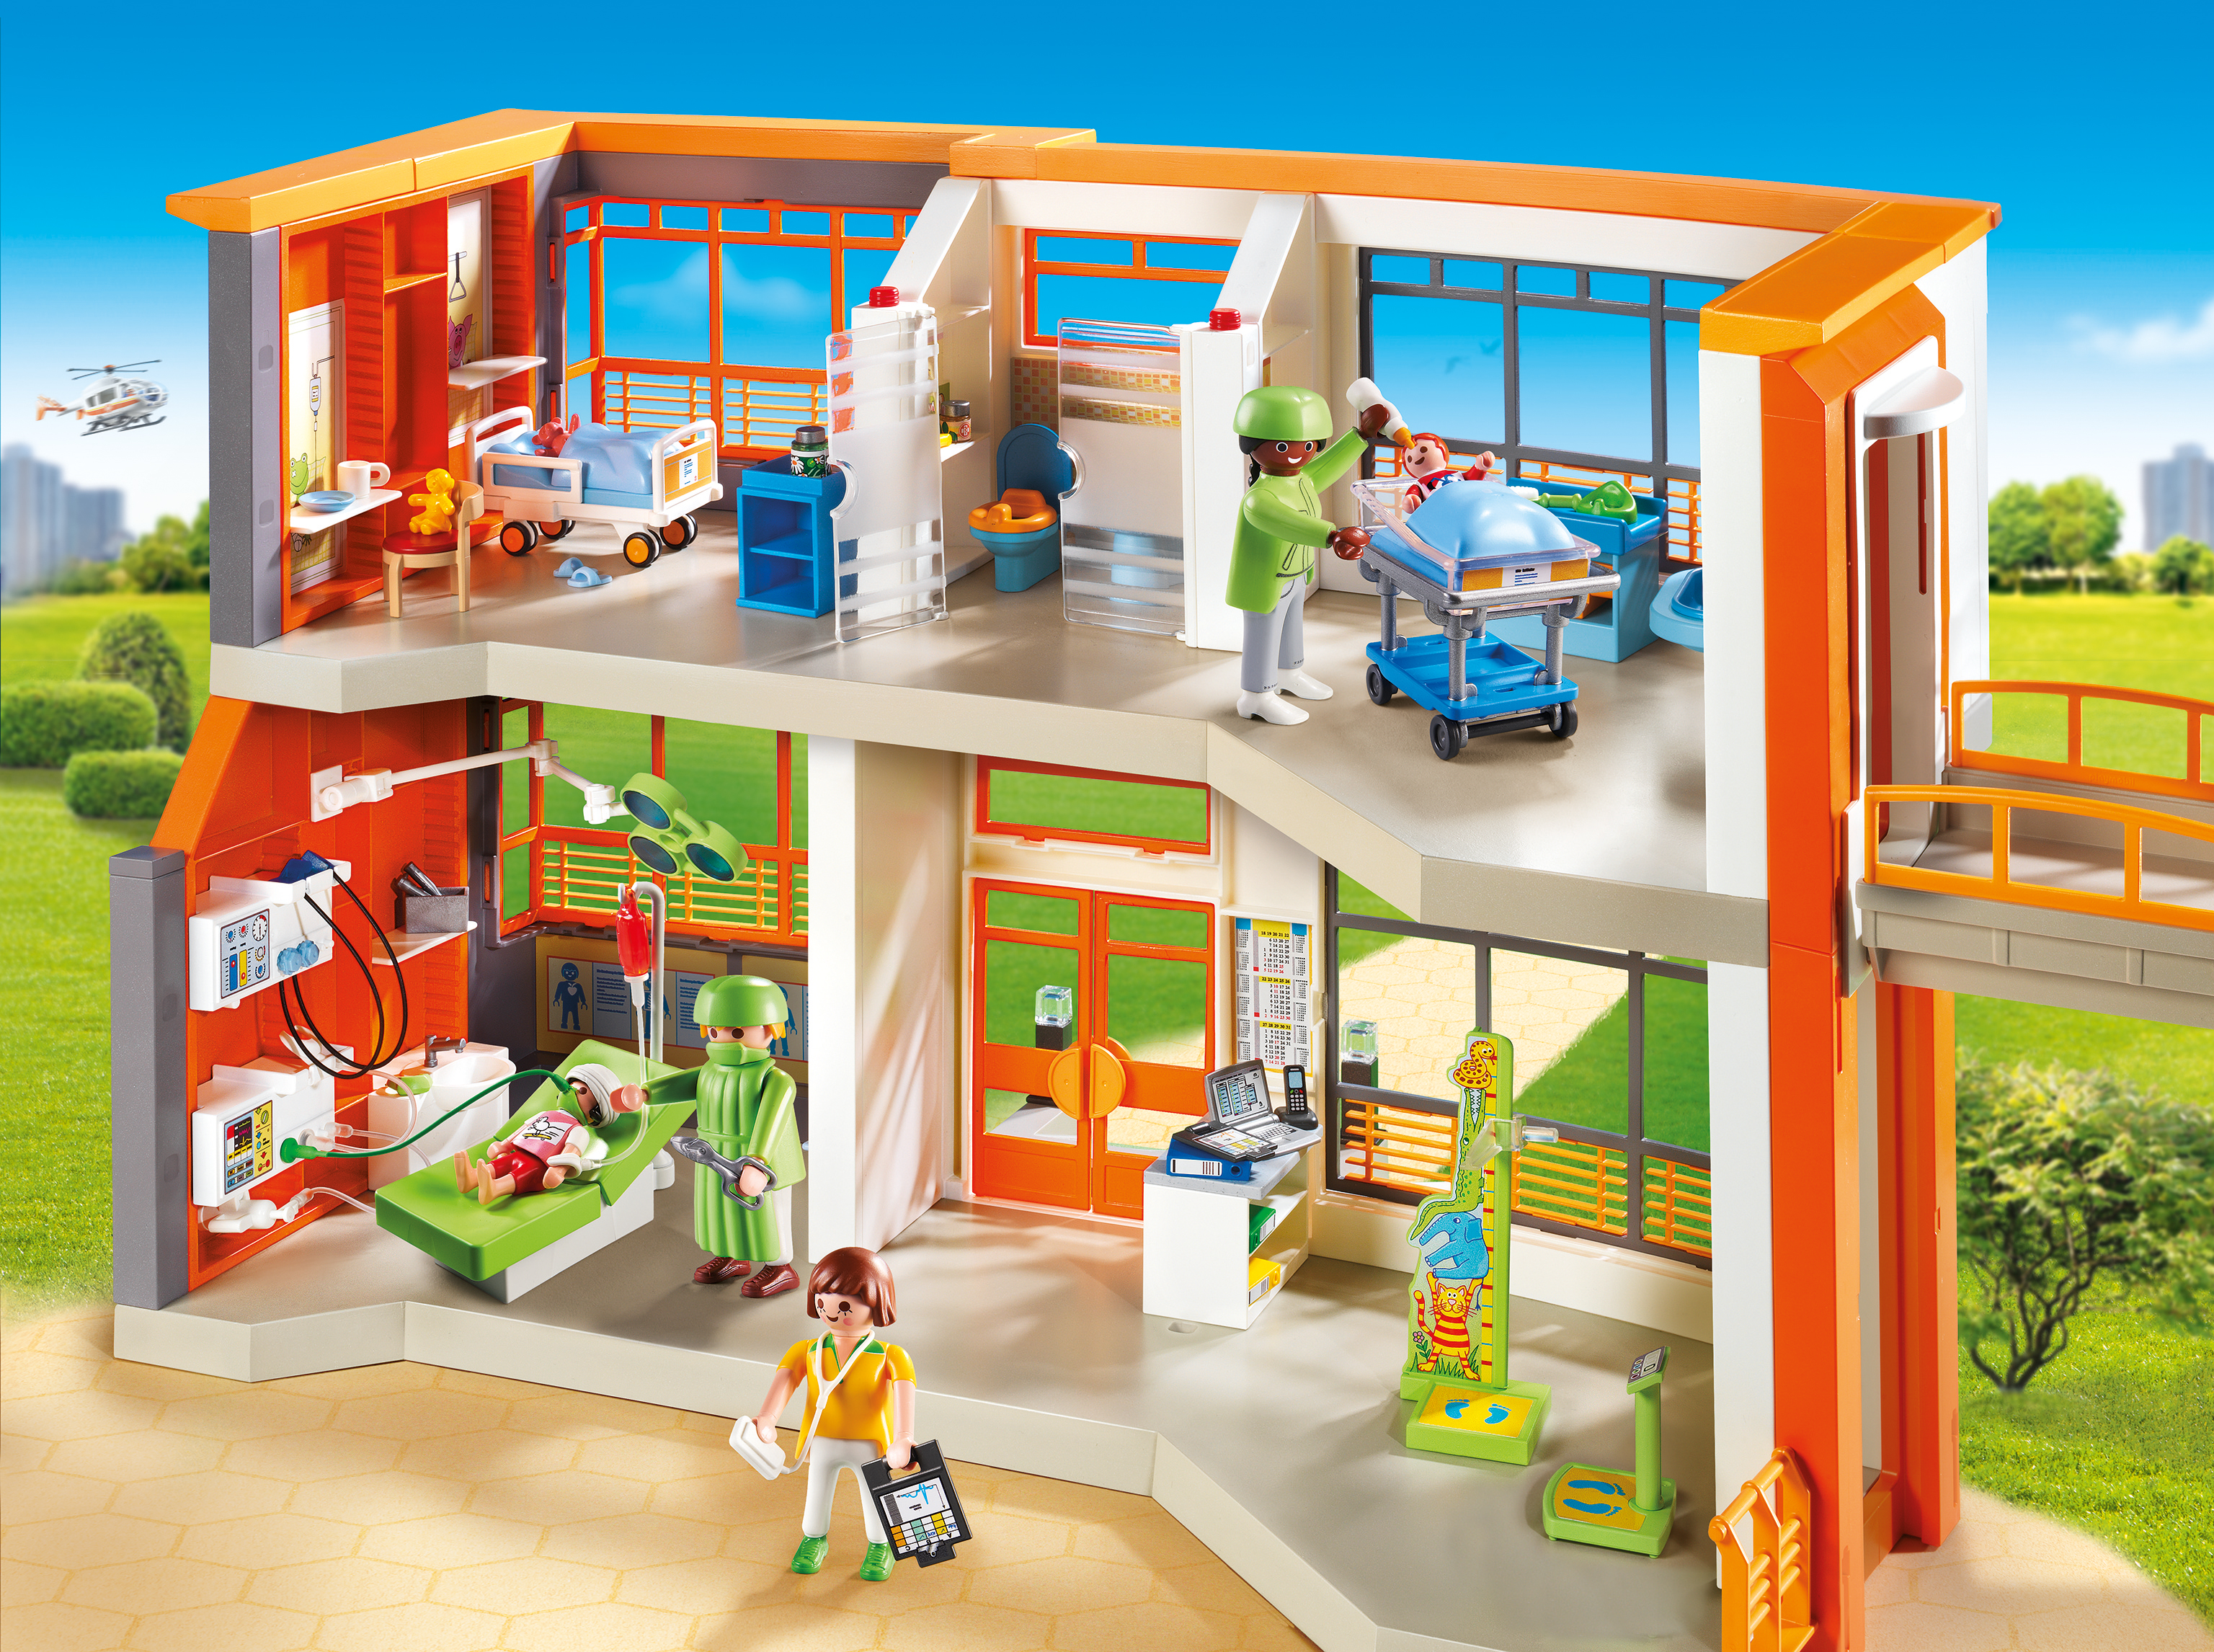 playmobil furnished children 39 s hospital encourages. Black Bedroom Furniture Sets. Home Design Ideas